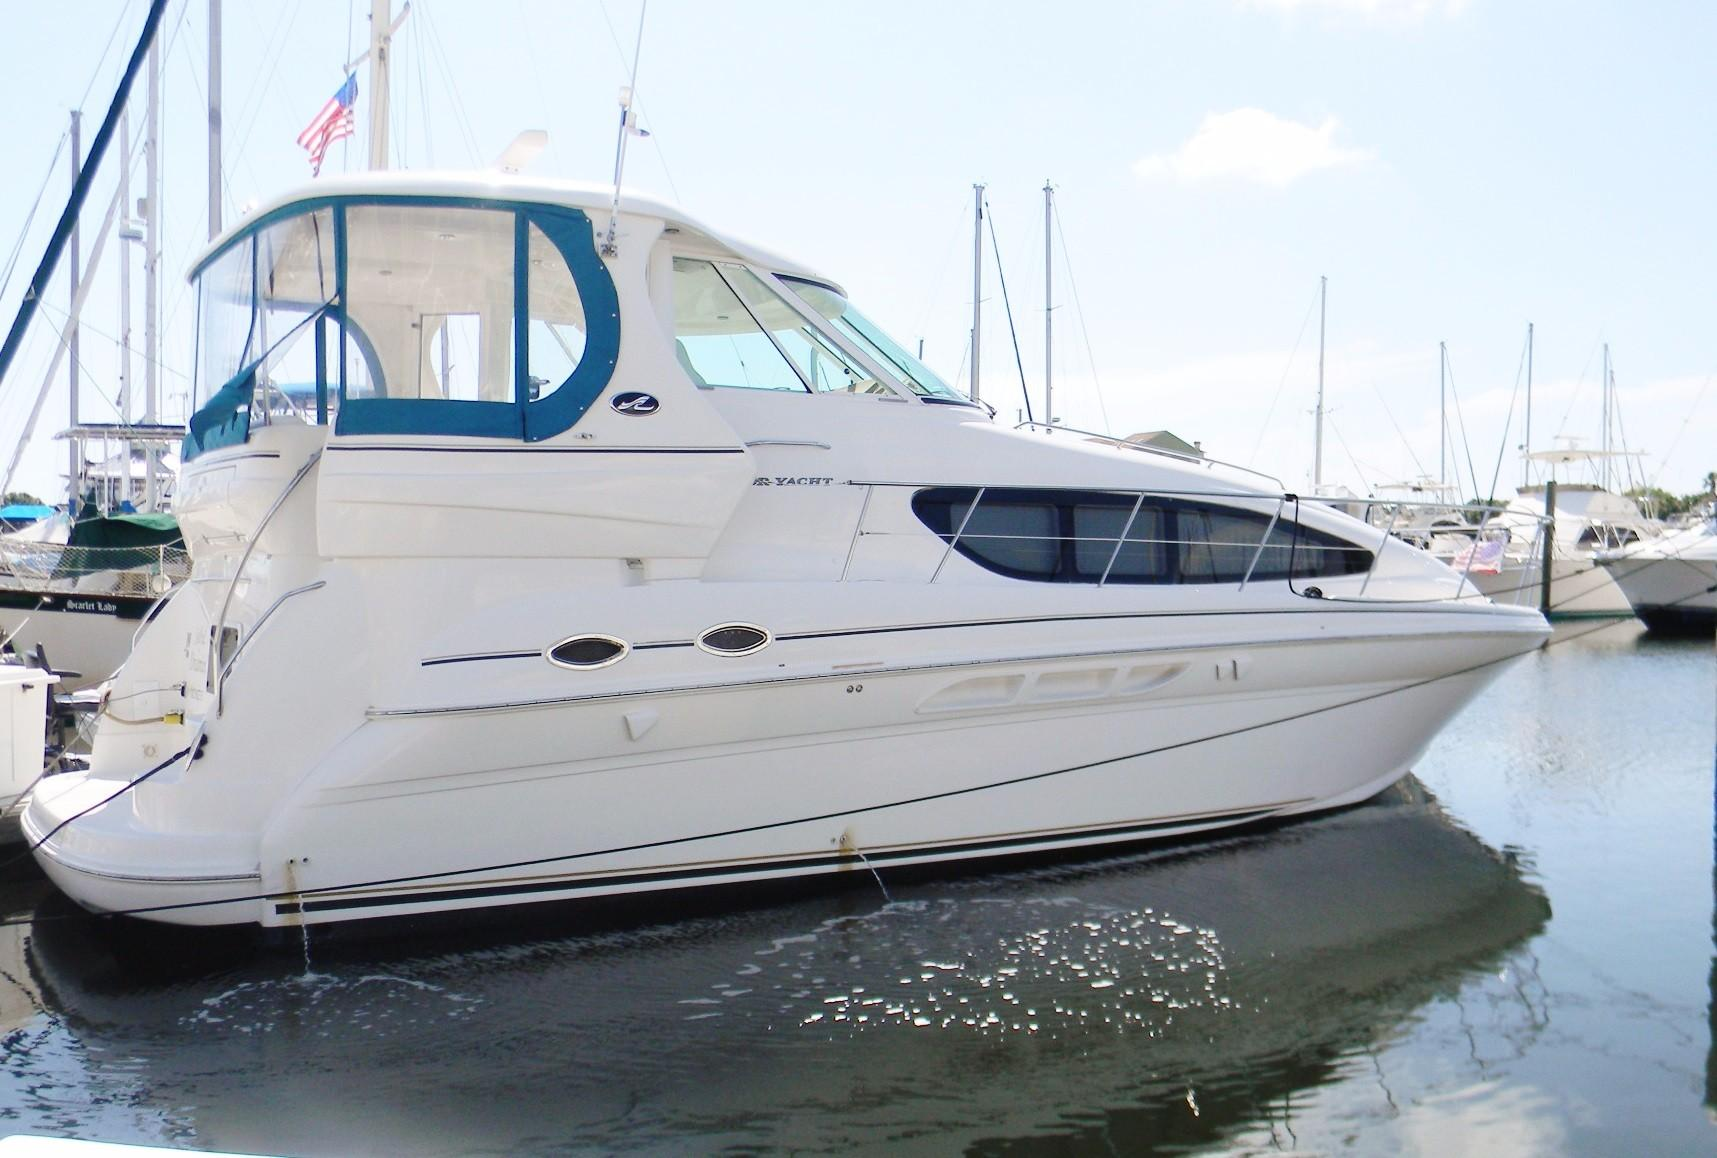 Sea ray 390 motor yacht new and used boats for sale for 390 sea ray motor yacht for sale